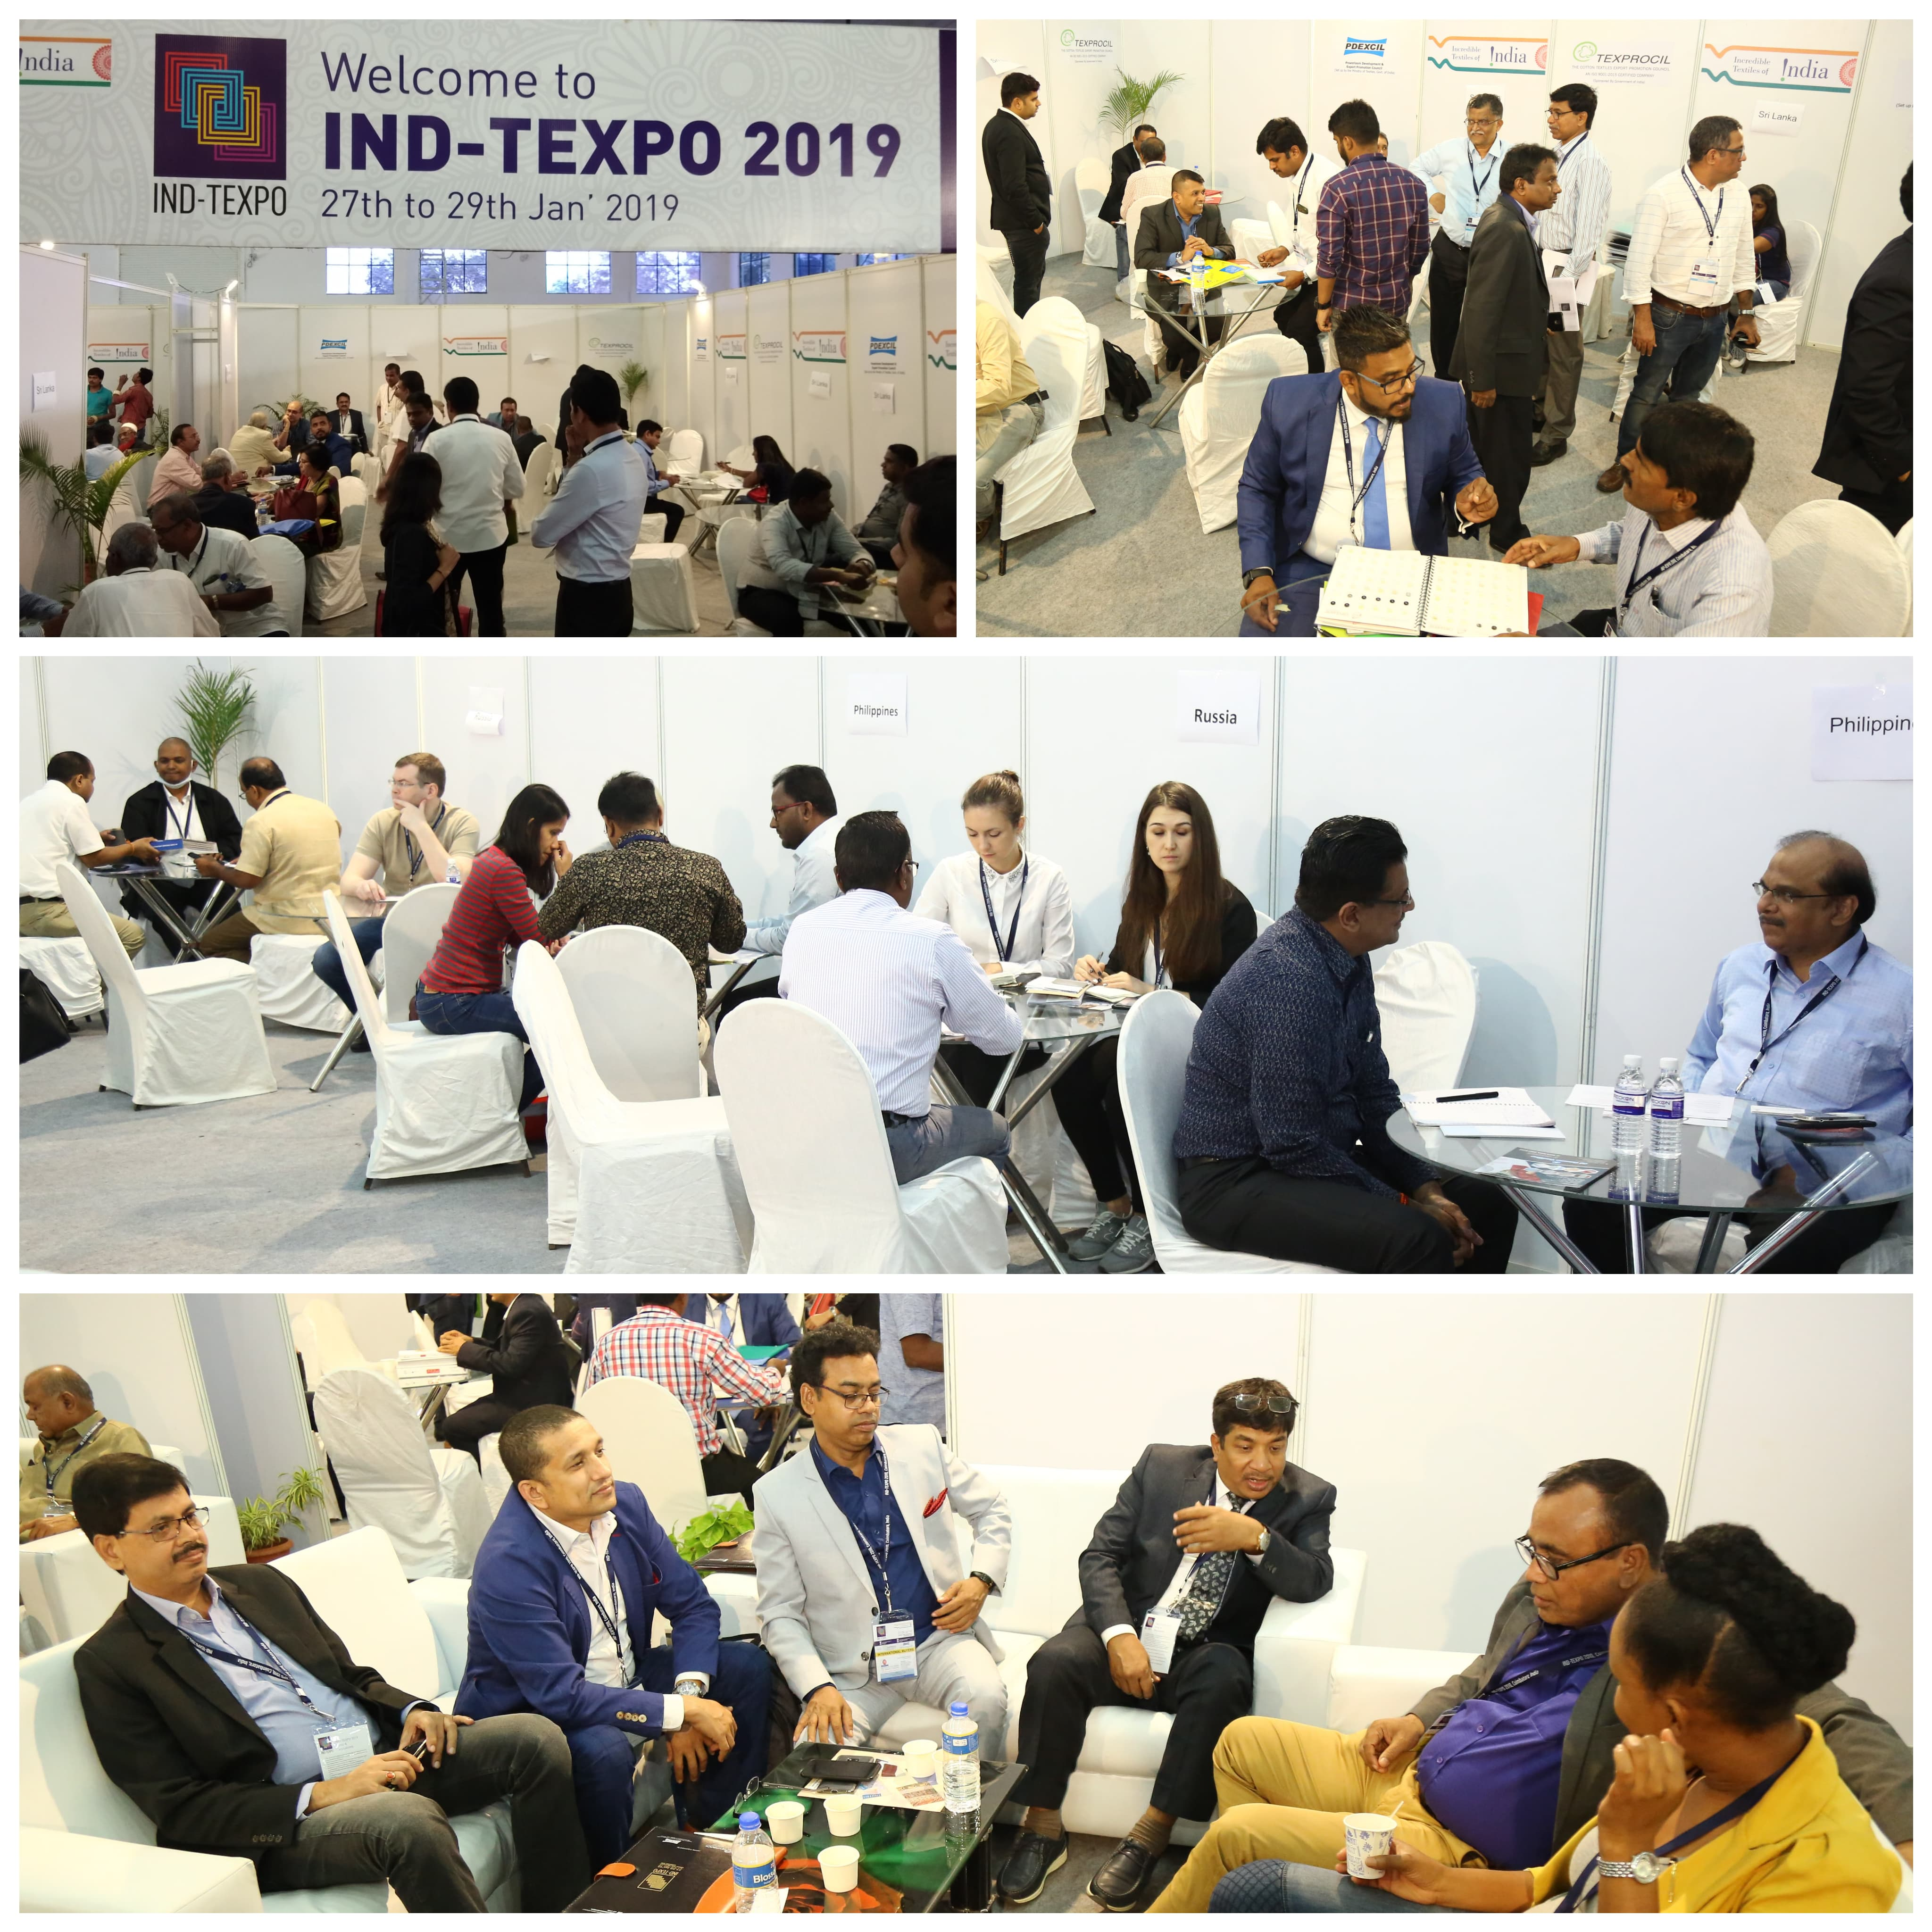 B2B Meetings conducted at IND-TEXPO 2019